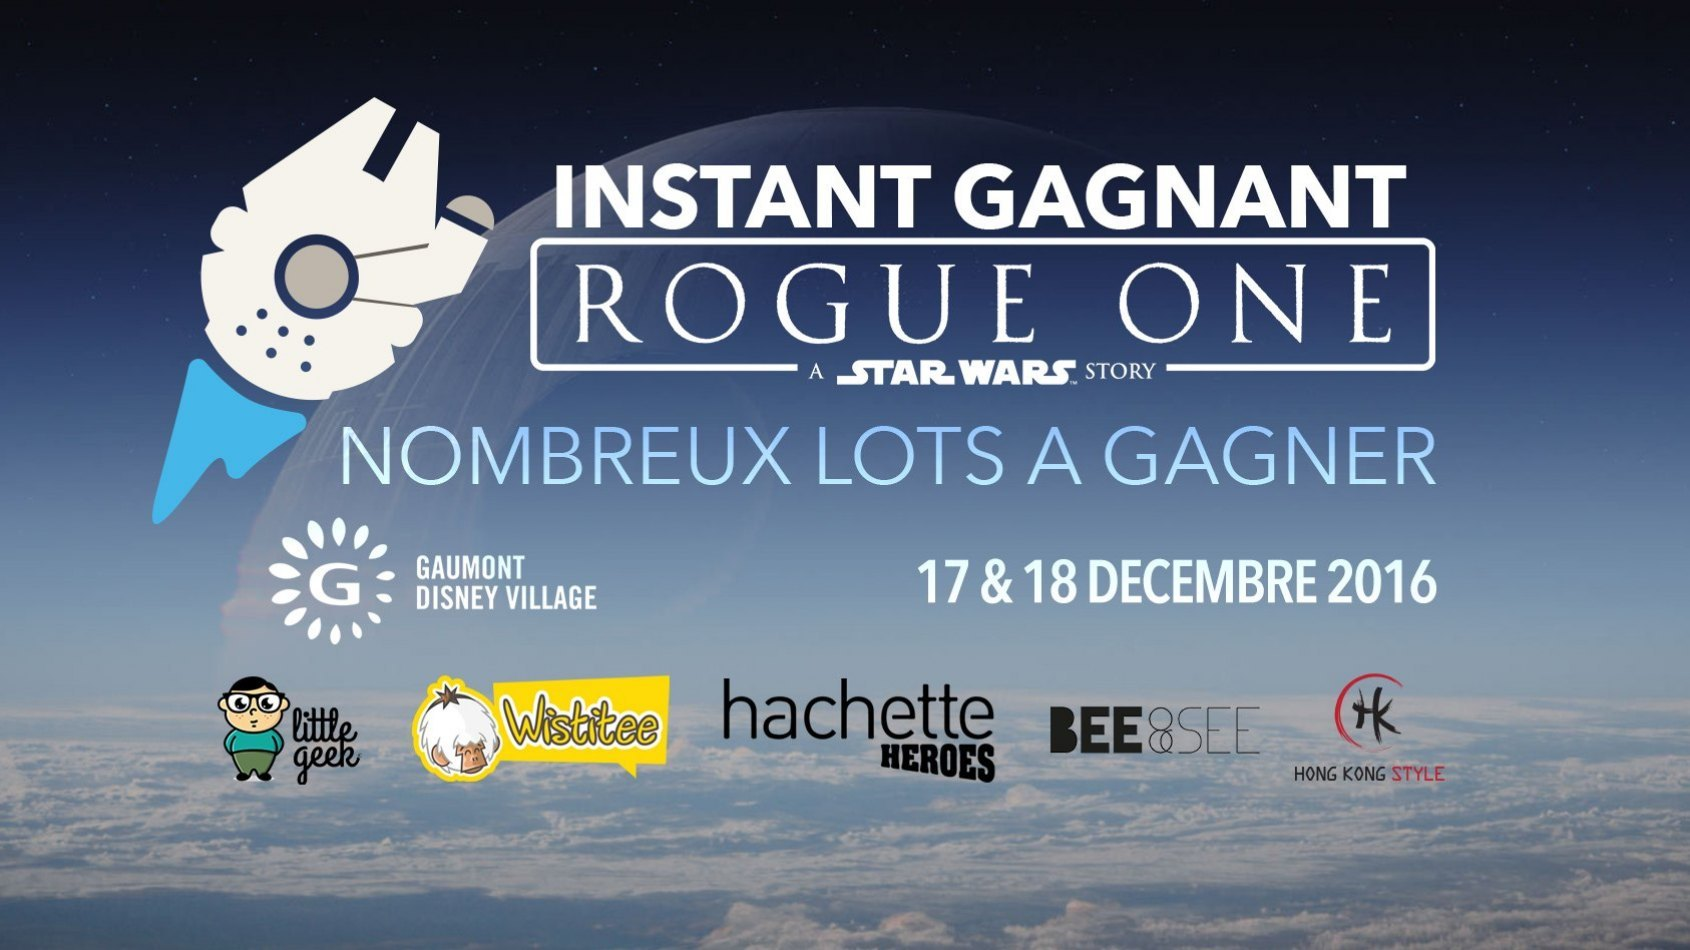 Instant Gagnant Rogue One au Gaumont Disney Village ce weekend !